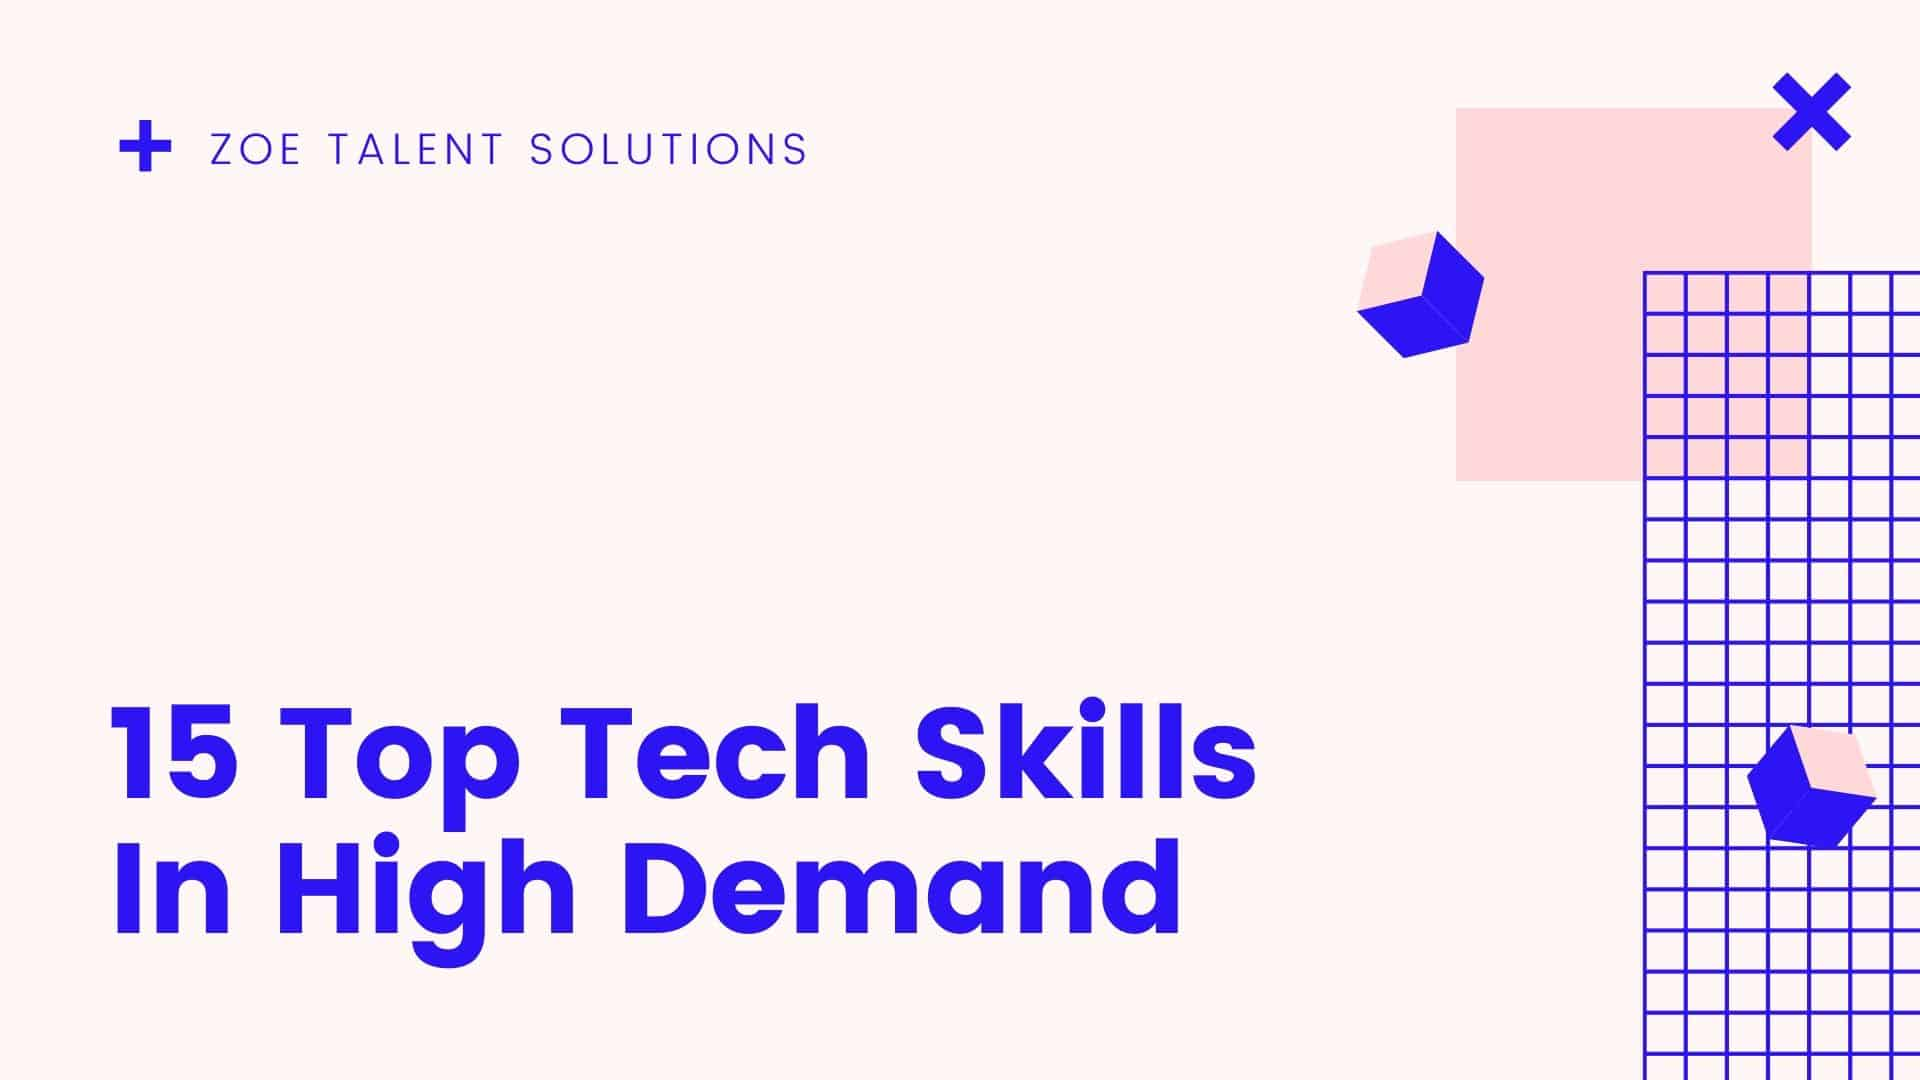 15 Top Tech Skills In High Demand